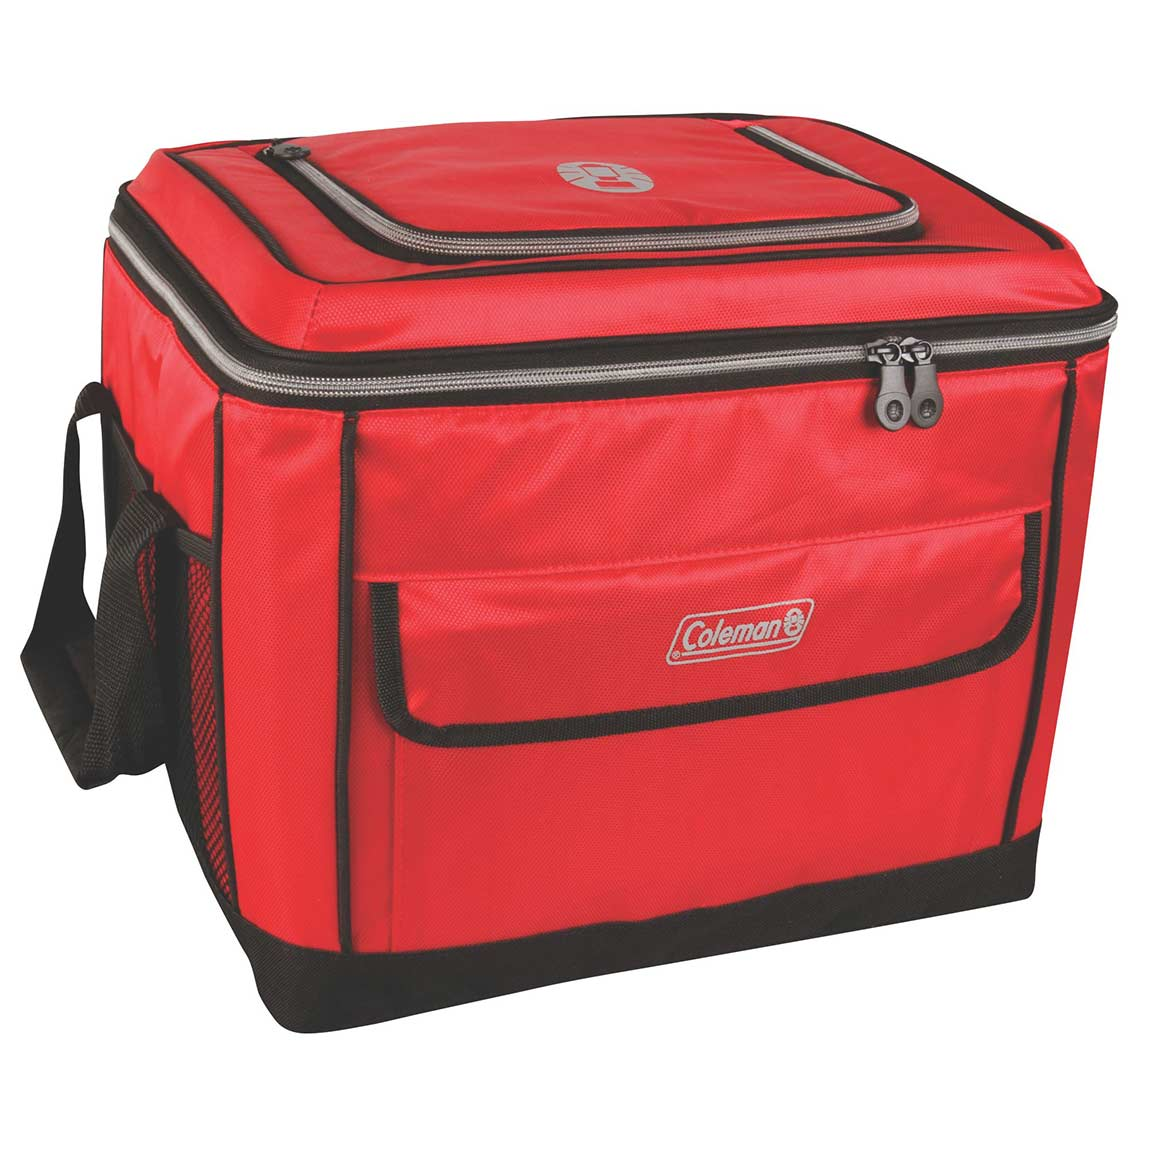 Coleman 40 Can Collapsible Cooler, Red